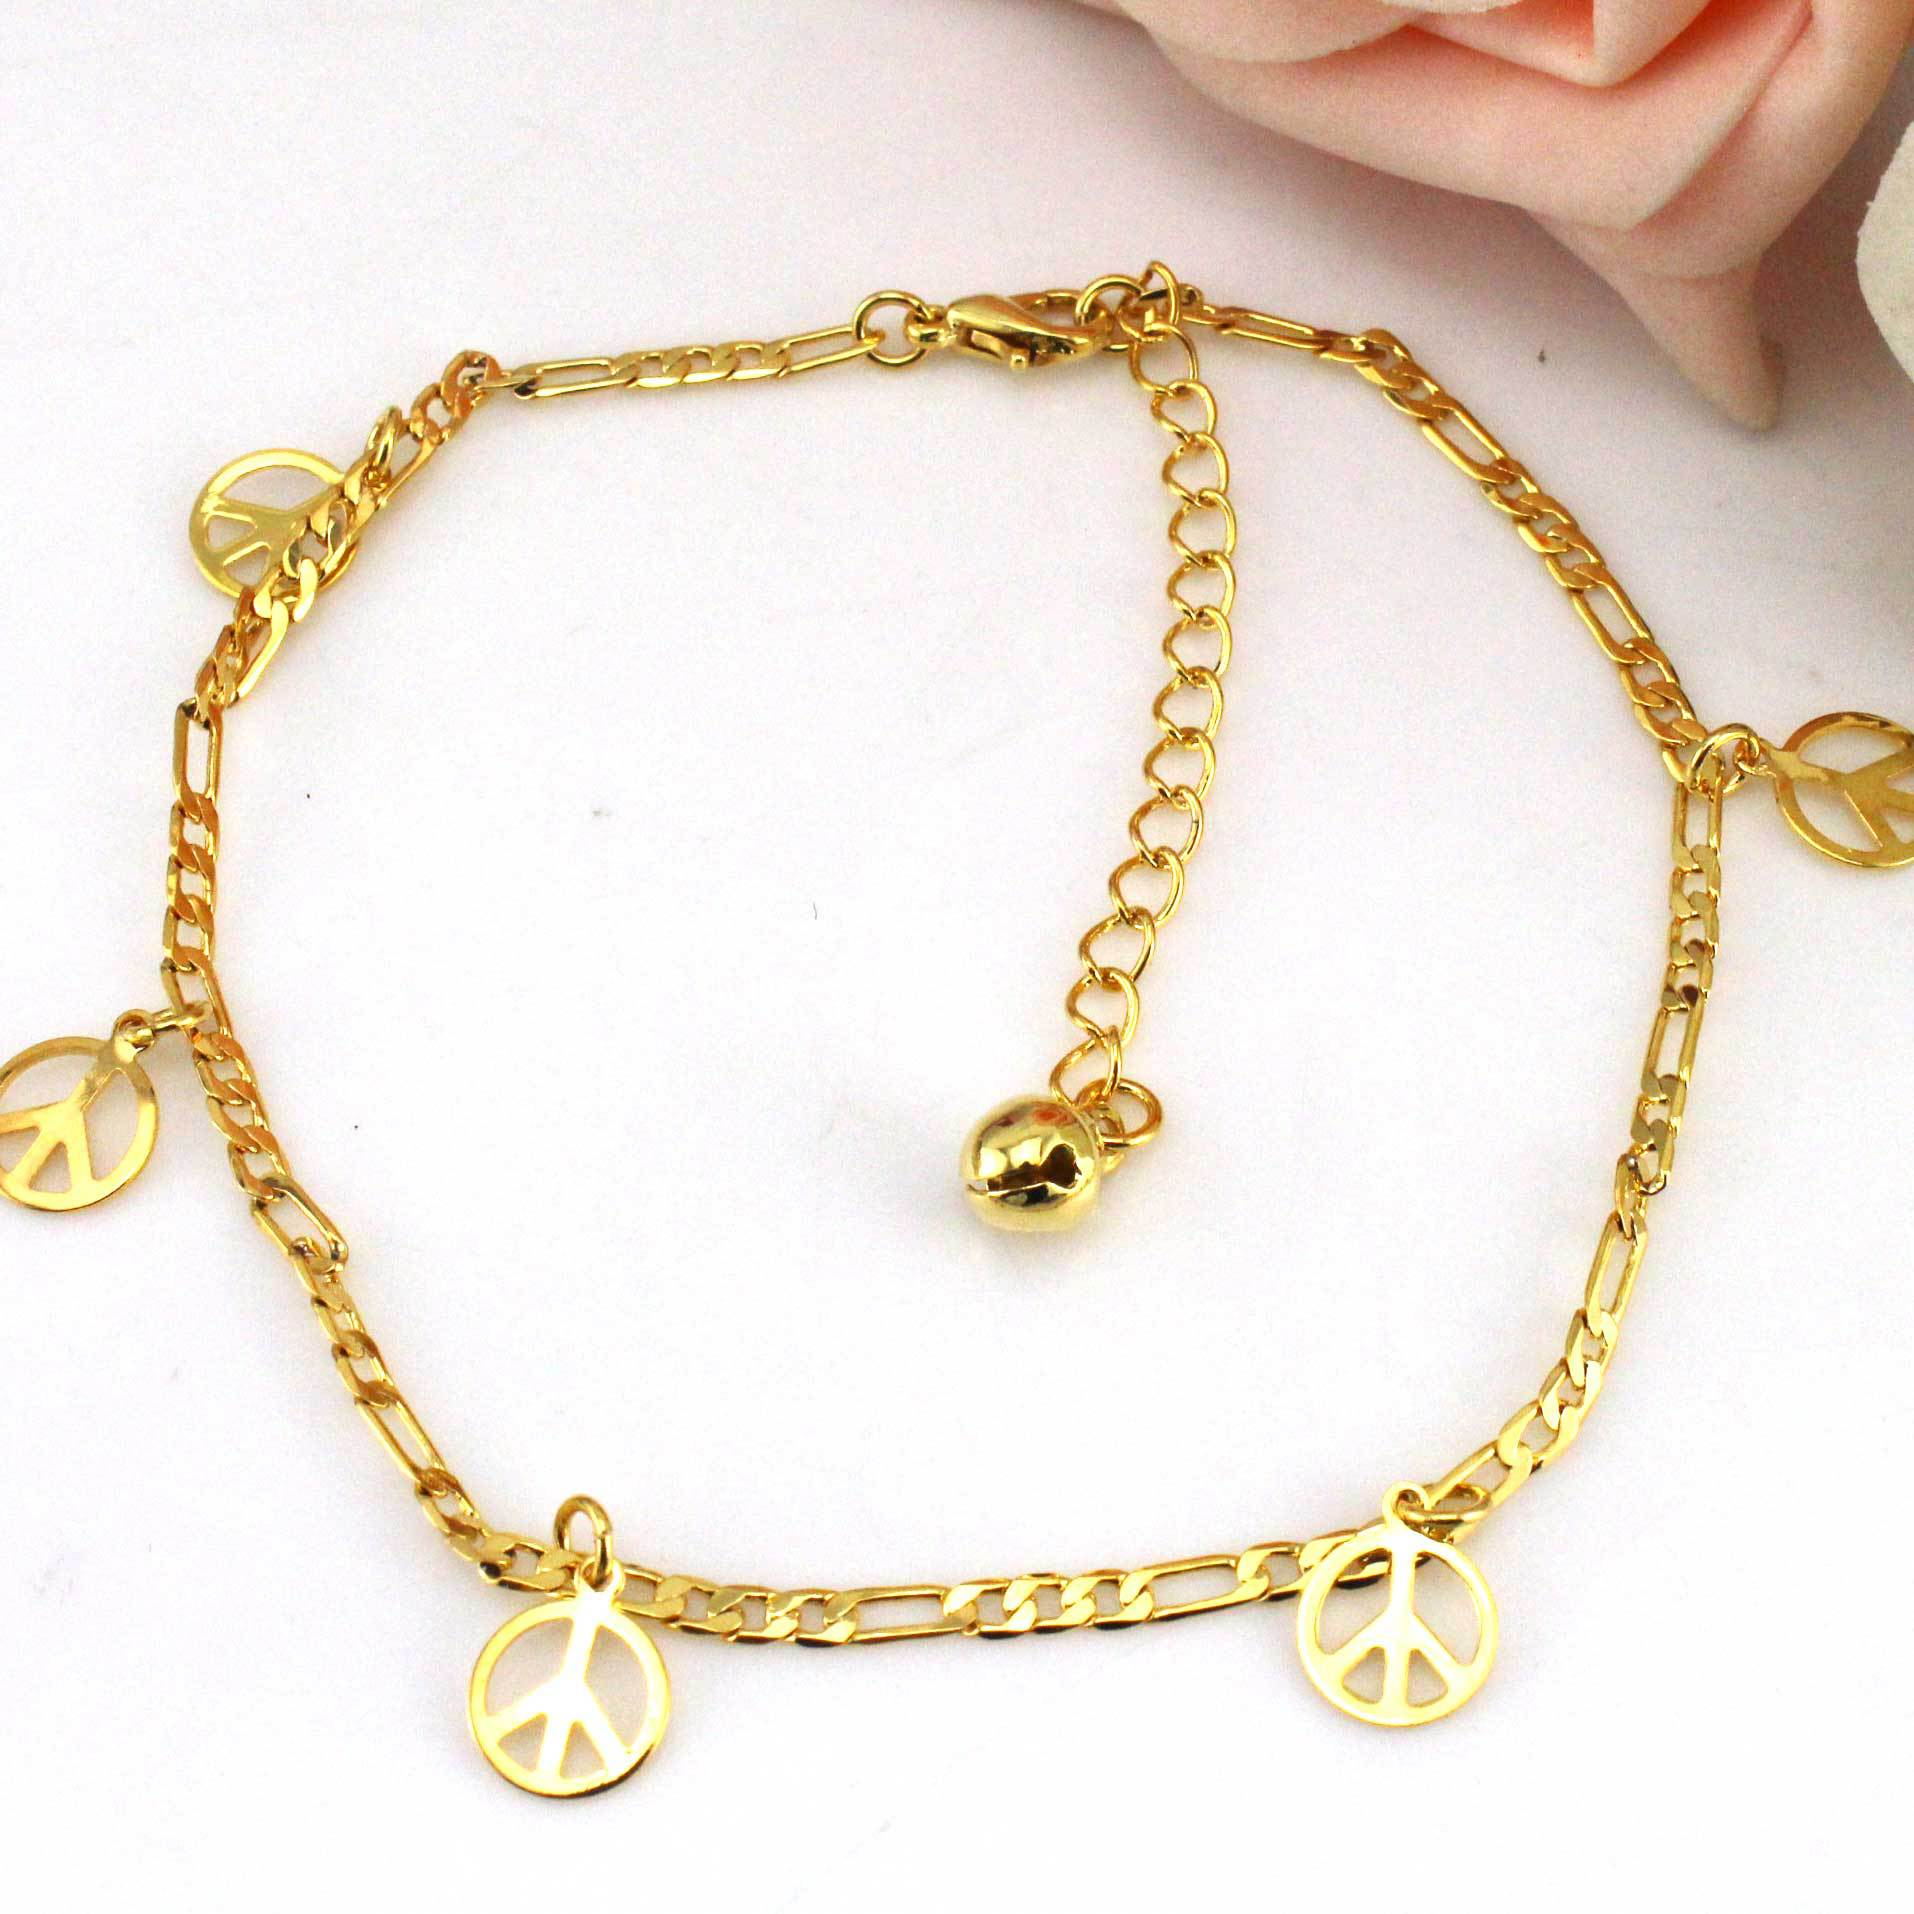 and with bracelets bracelet shani adi product anklets anklet chain ankle minimalist handmade jewelry plated charms gold